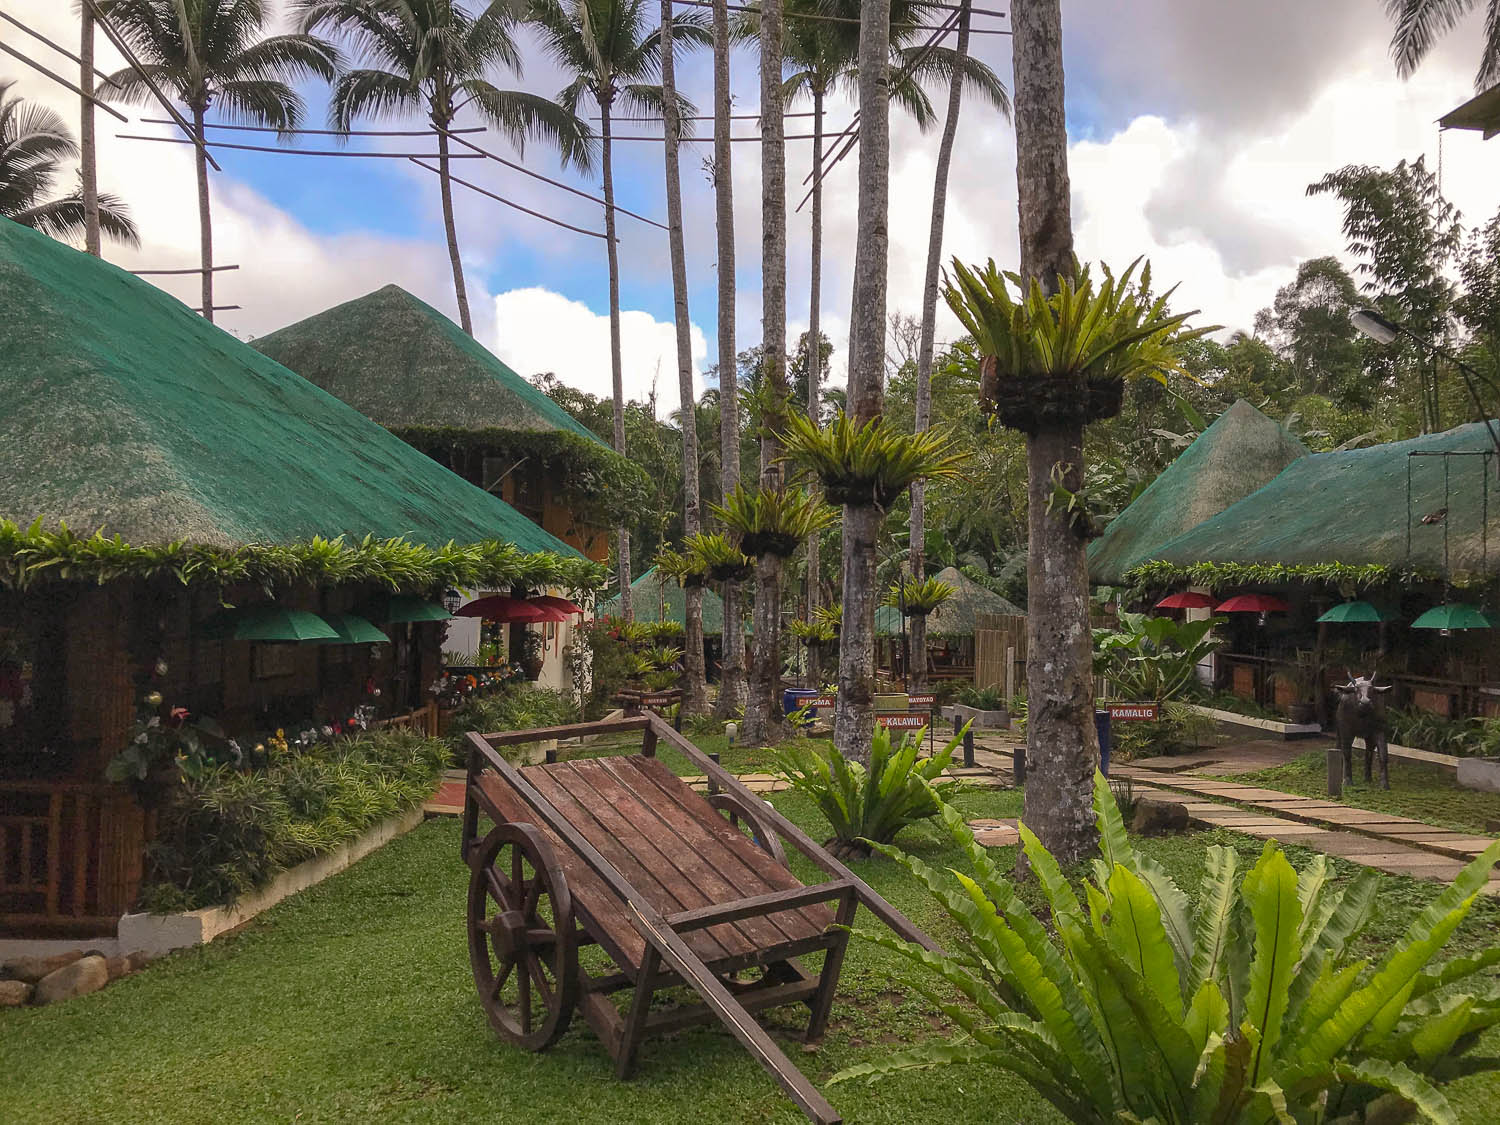 The Samkara Garden Resort near Lucban. Image: © David Astley